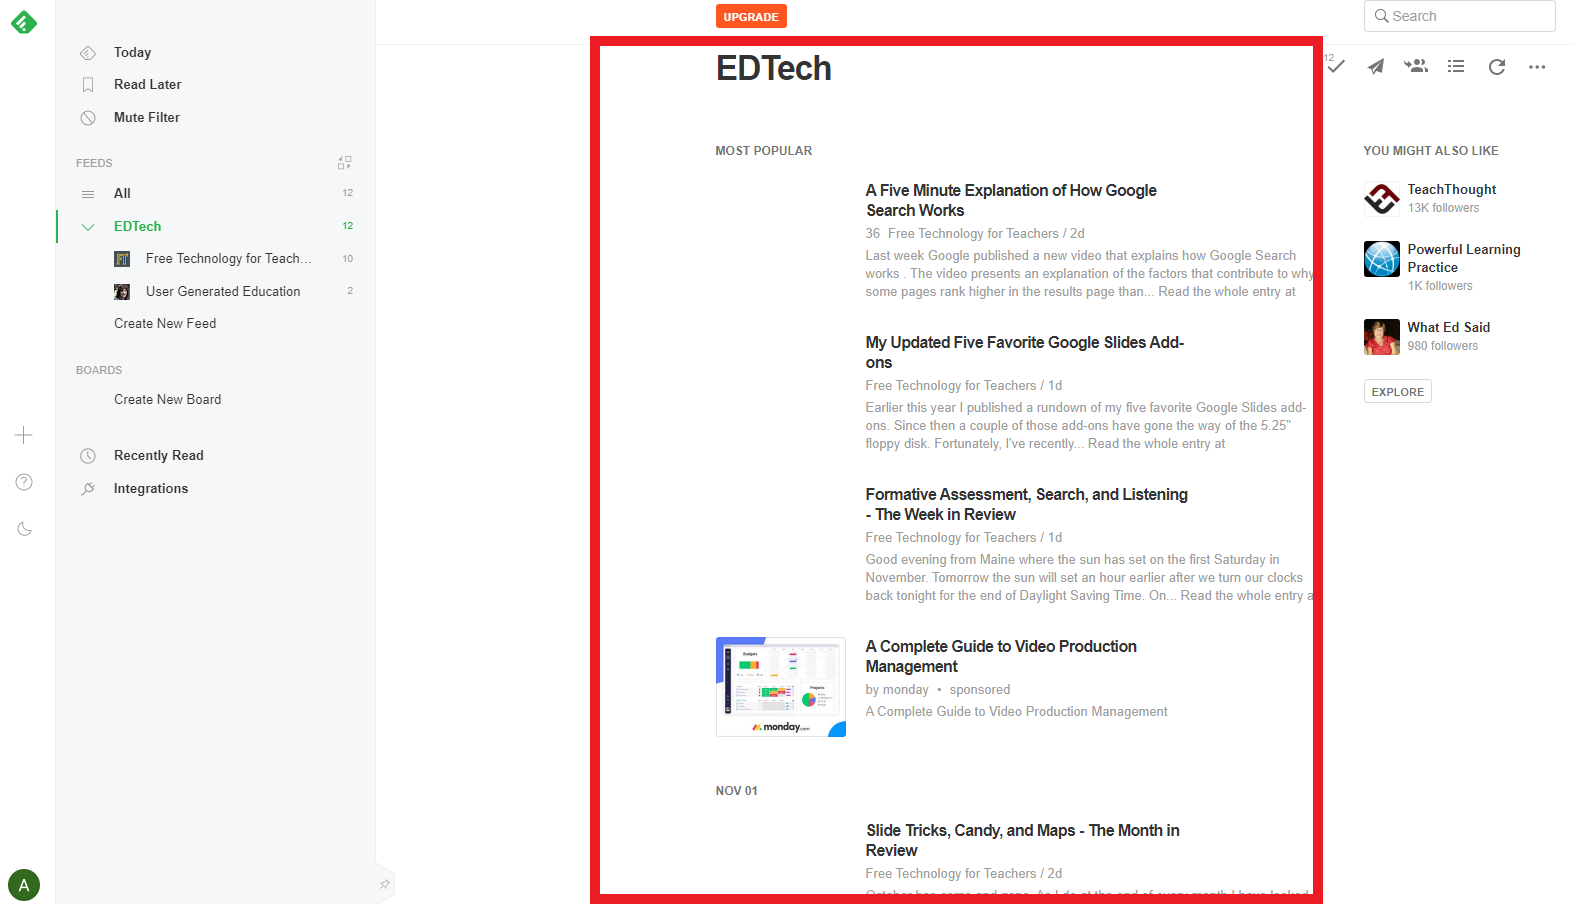 EDTech blog outline on Feedly